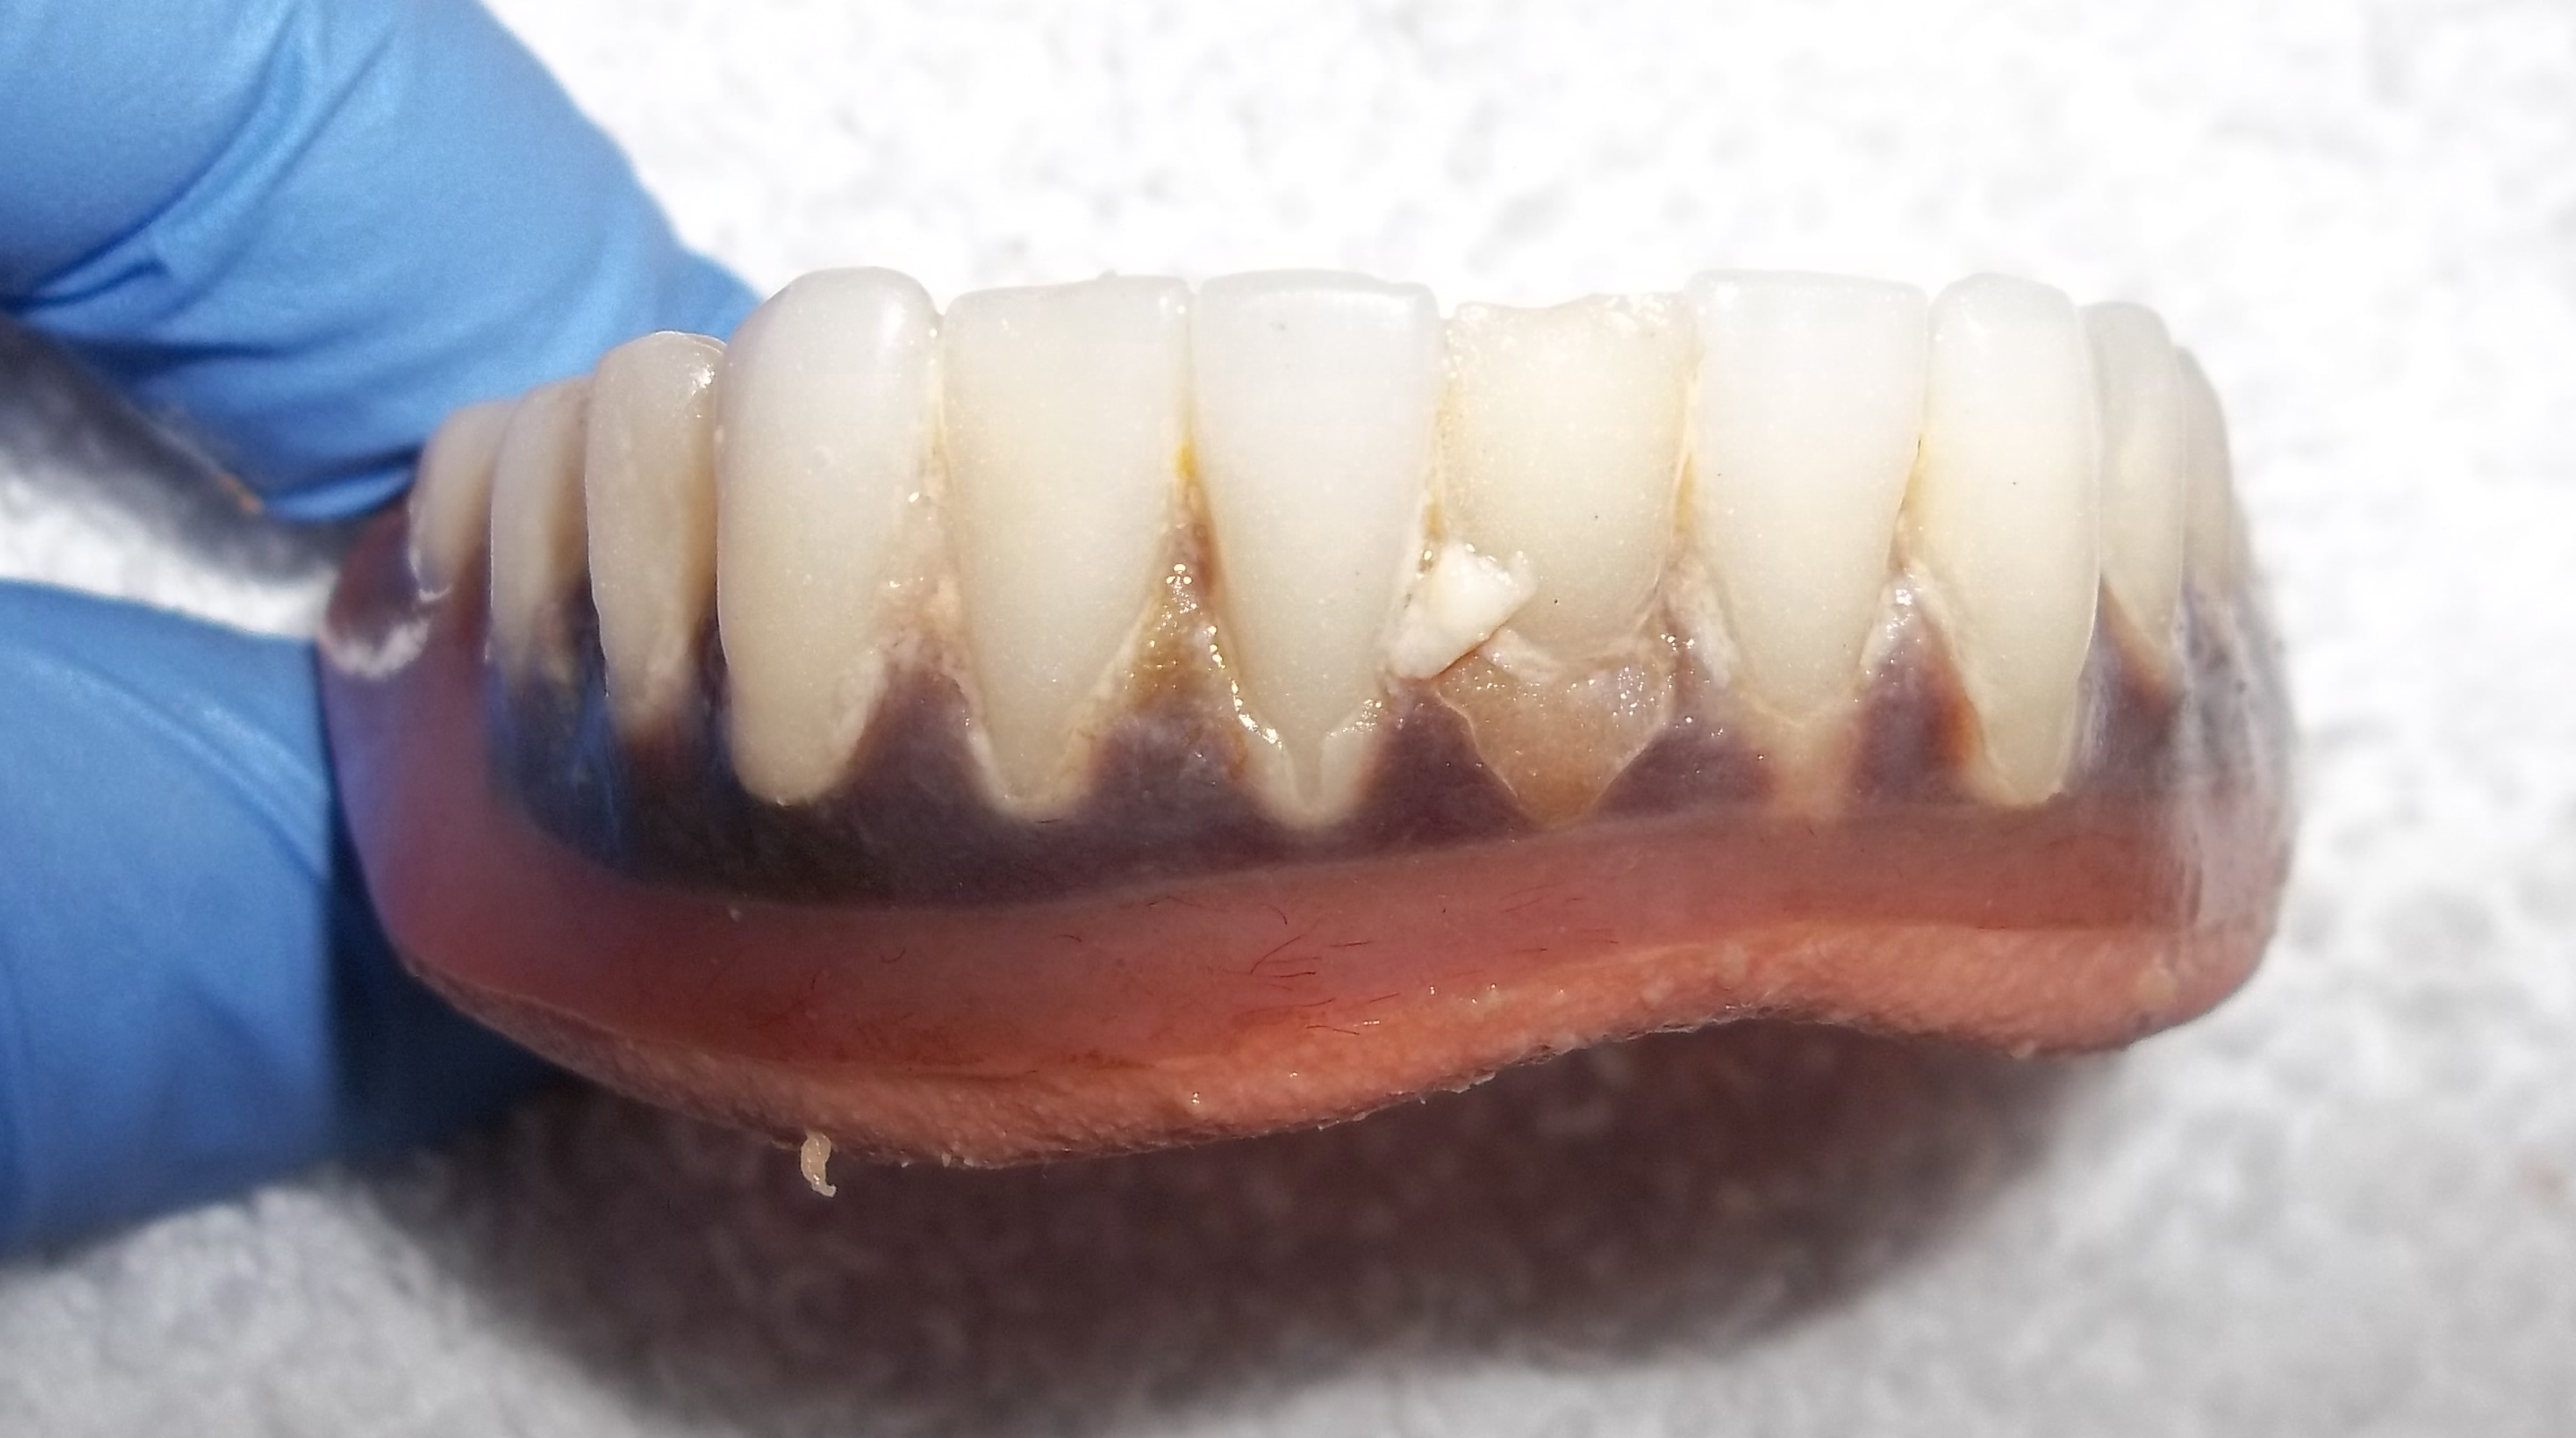 Old worn denture